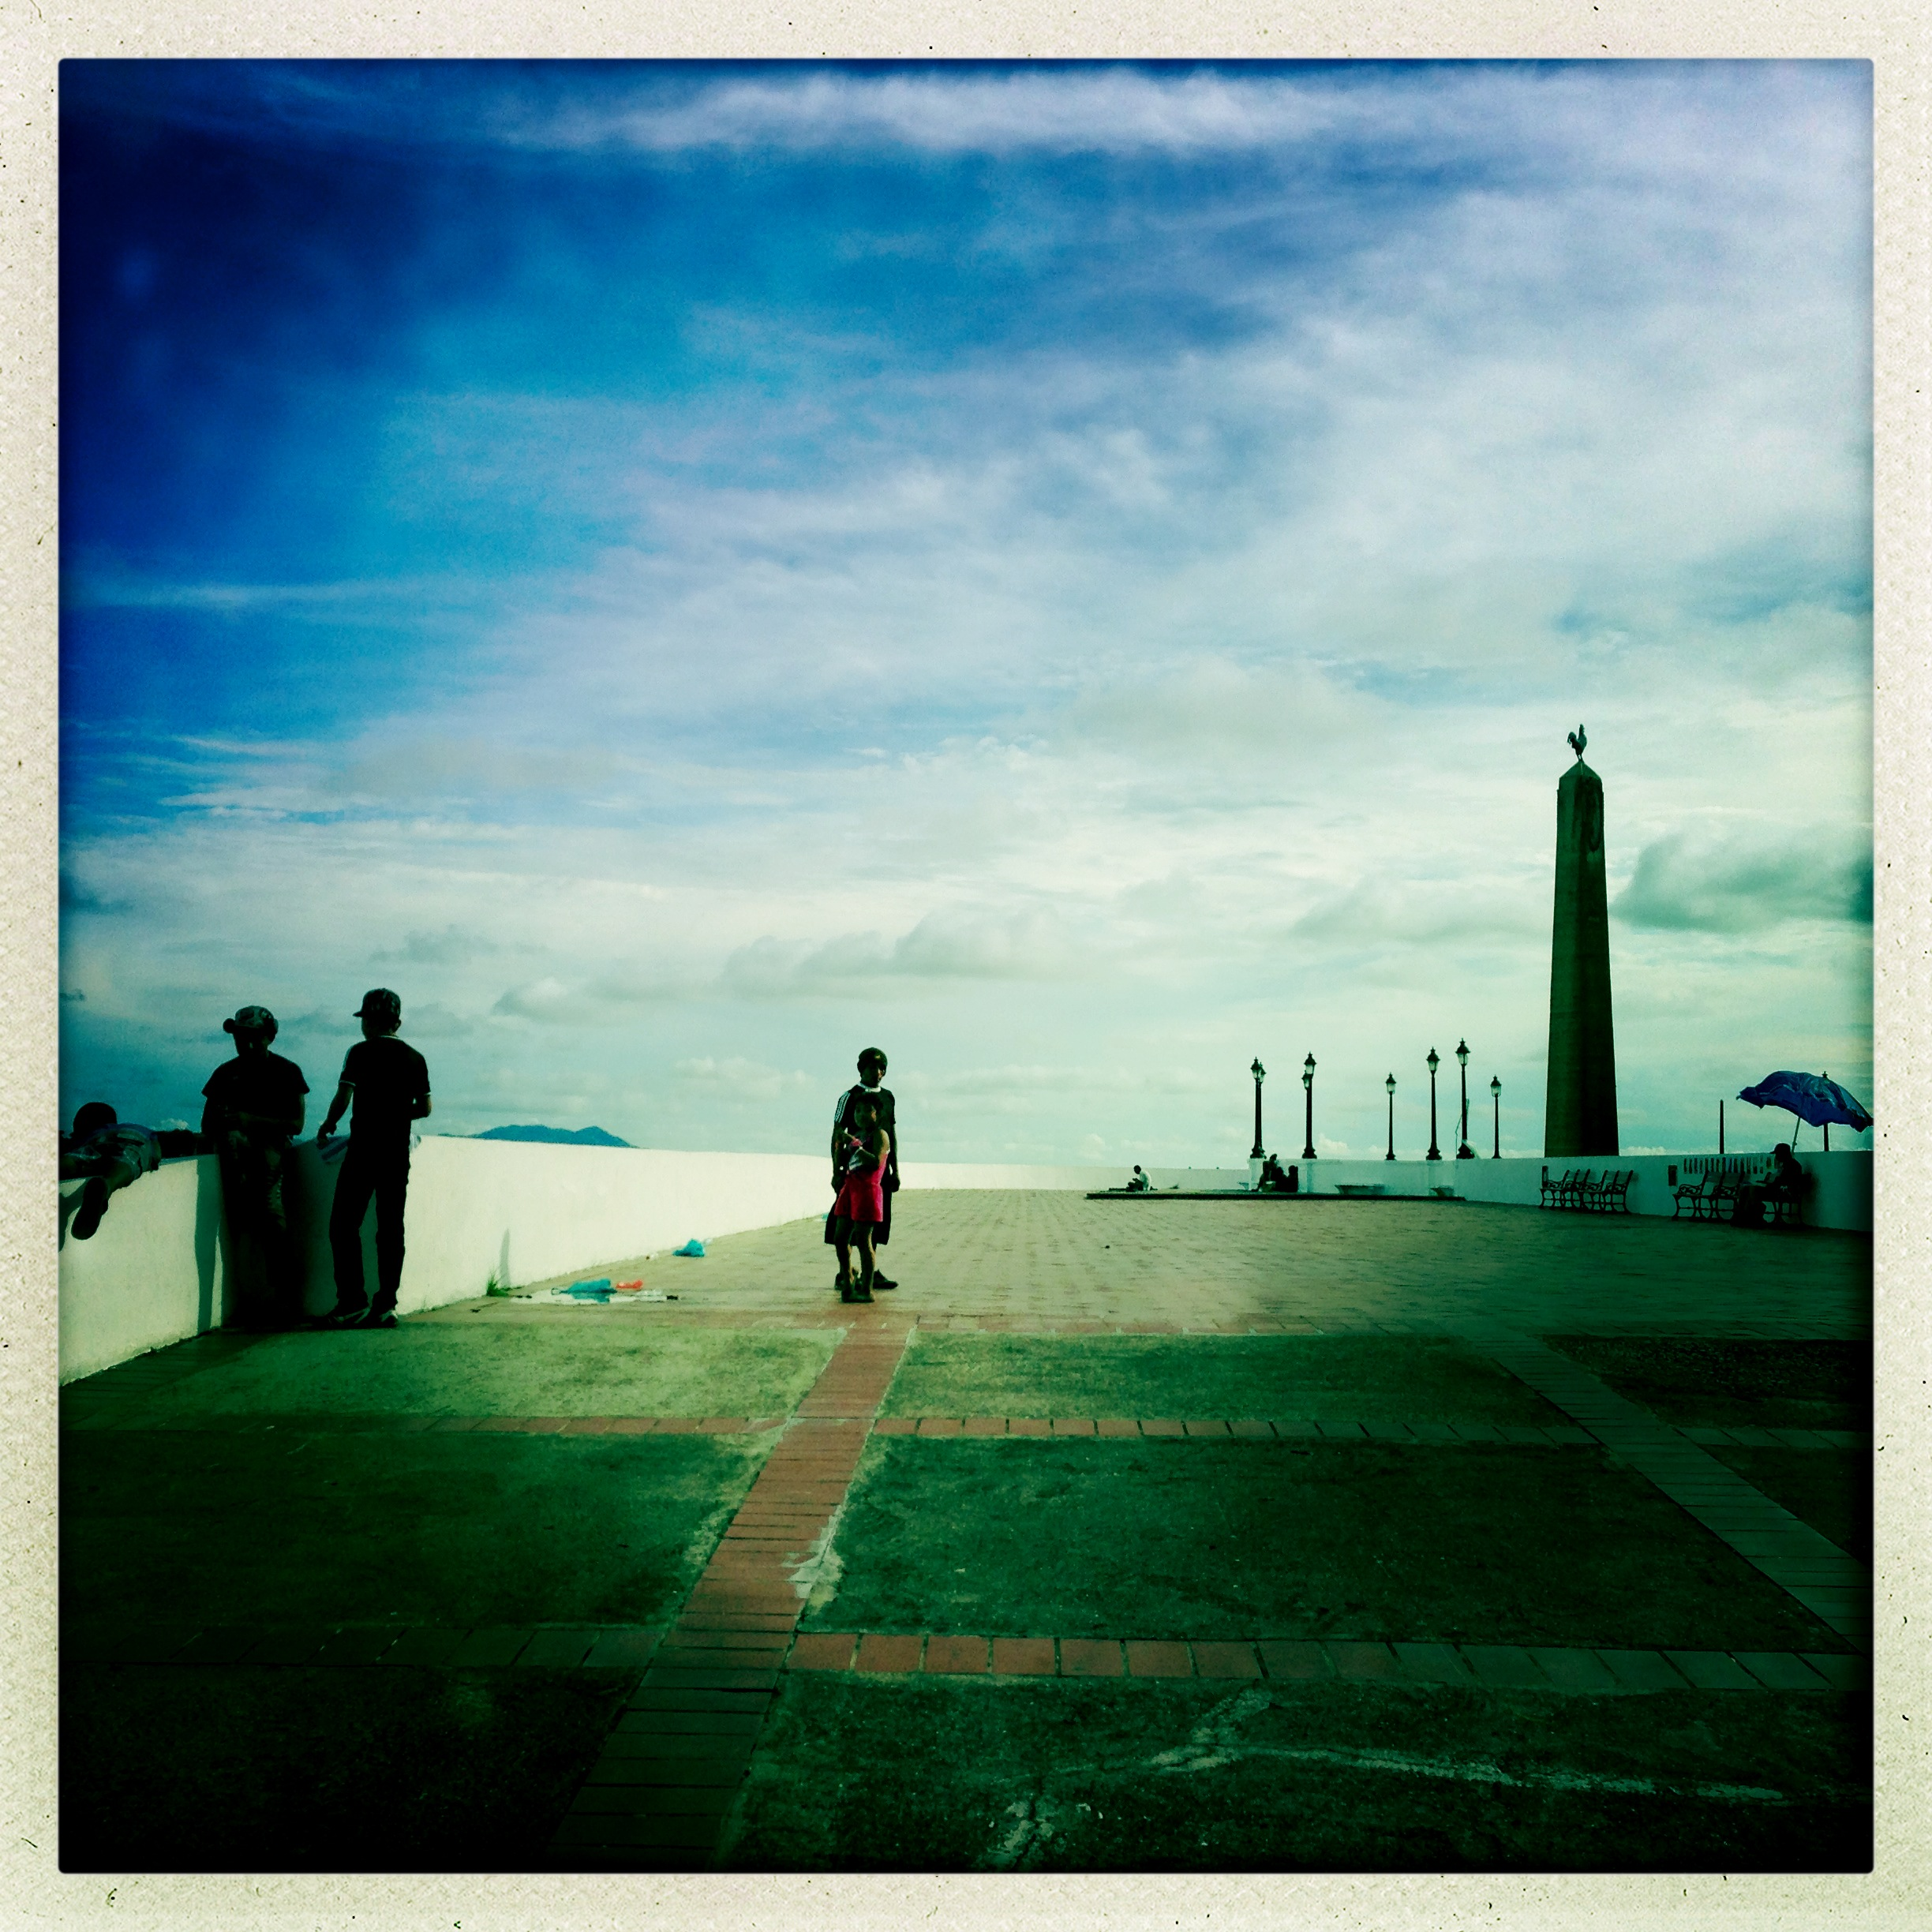 On the Malecon, Panama City, Panama